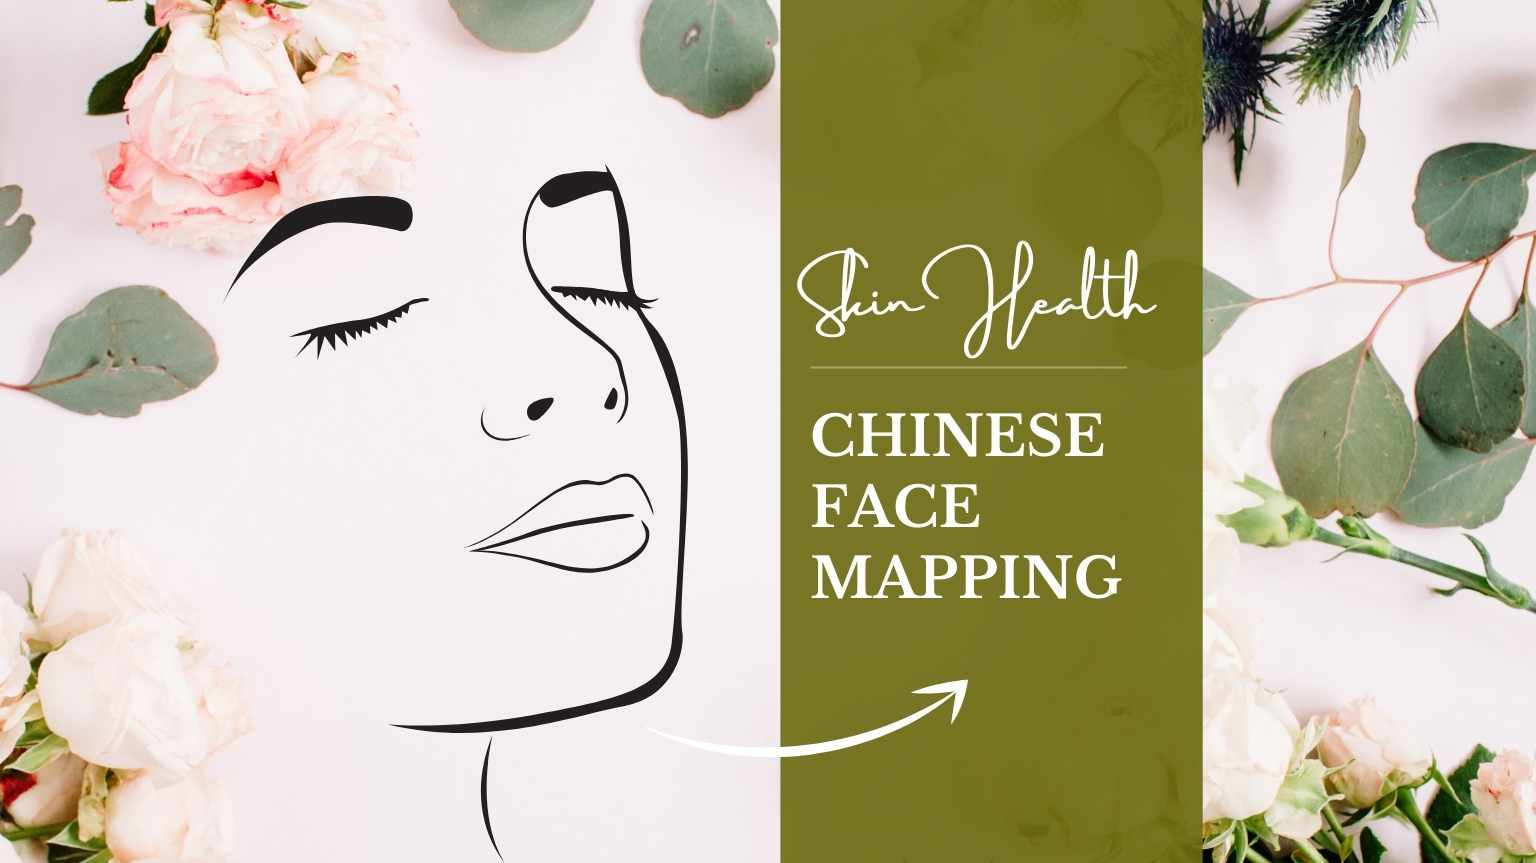 Chinese face mapping – Skin is the window of your health